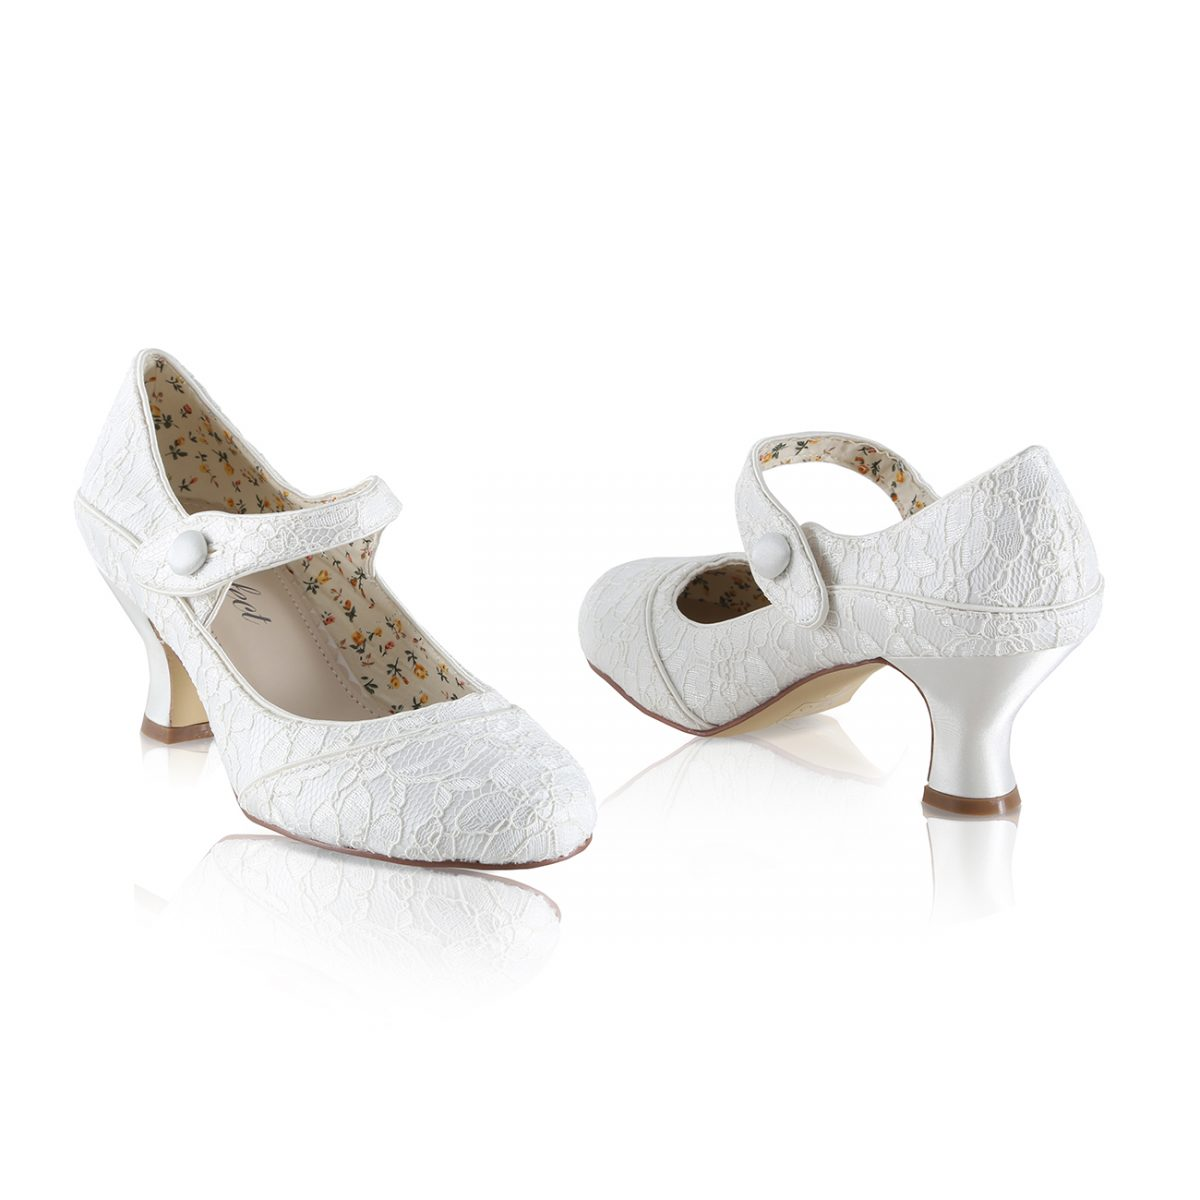 Perfect Bridal Esta Shoes - Ivory Lace - wide fitting